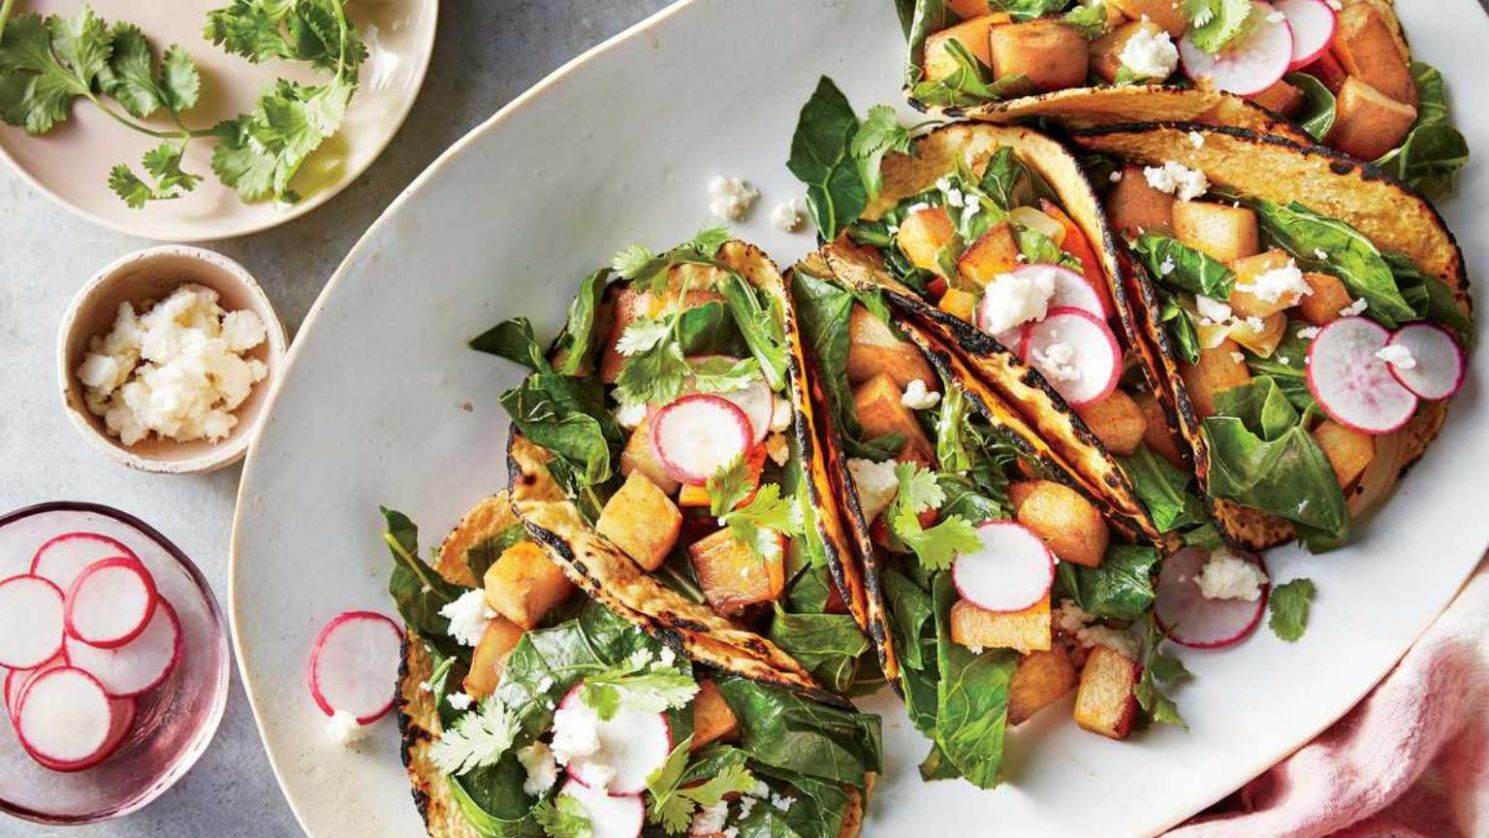 11 Easy Vegetarian Recipes for Busy Weeknights - Recipes All Vegetable